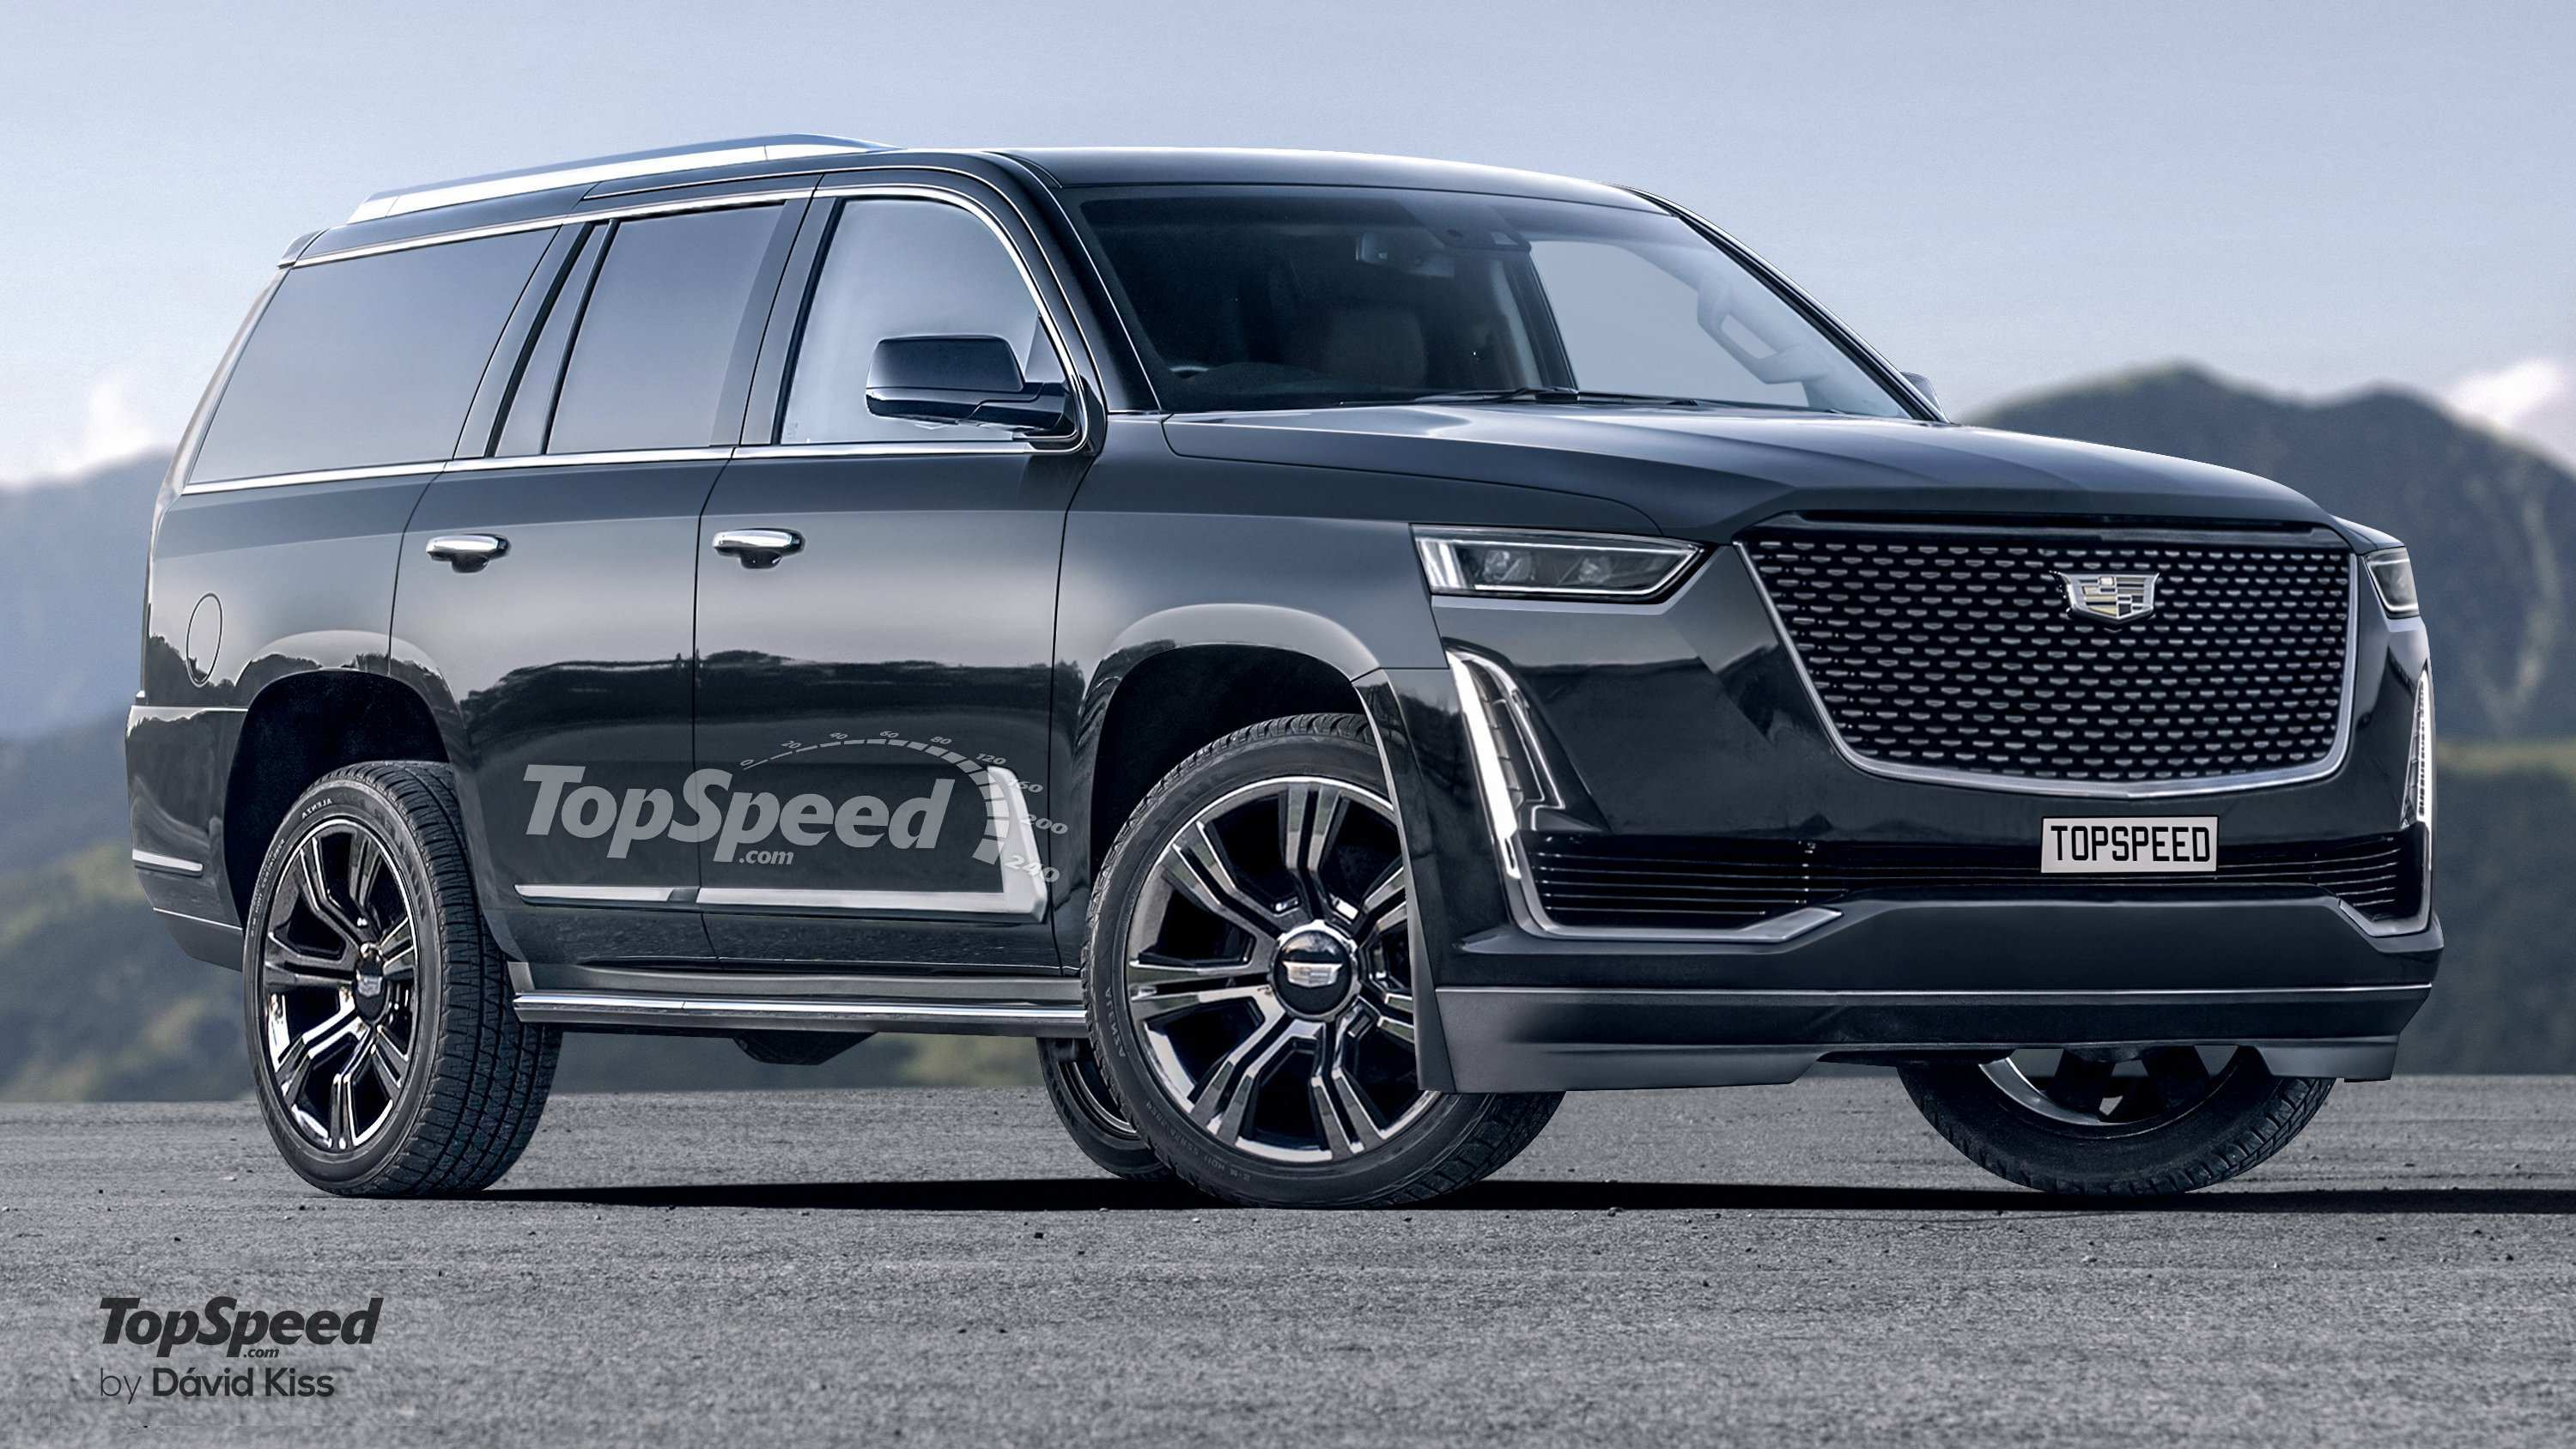 69 All New 2020 Cadillac Escalade Luxury Suv Price And Review